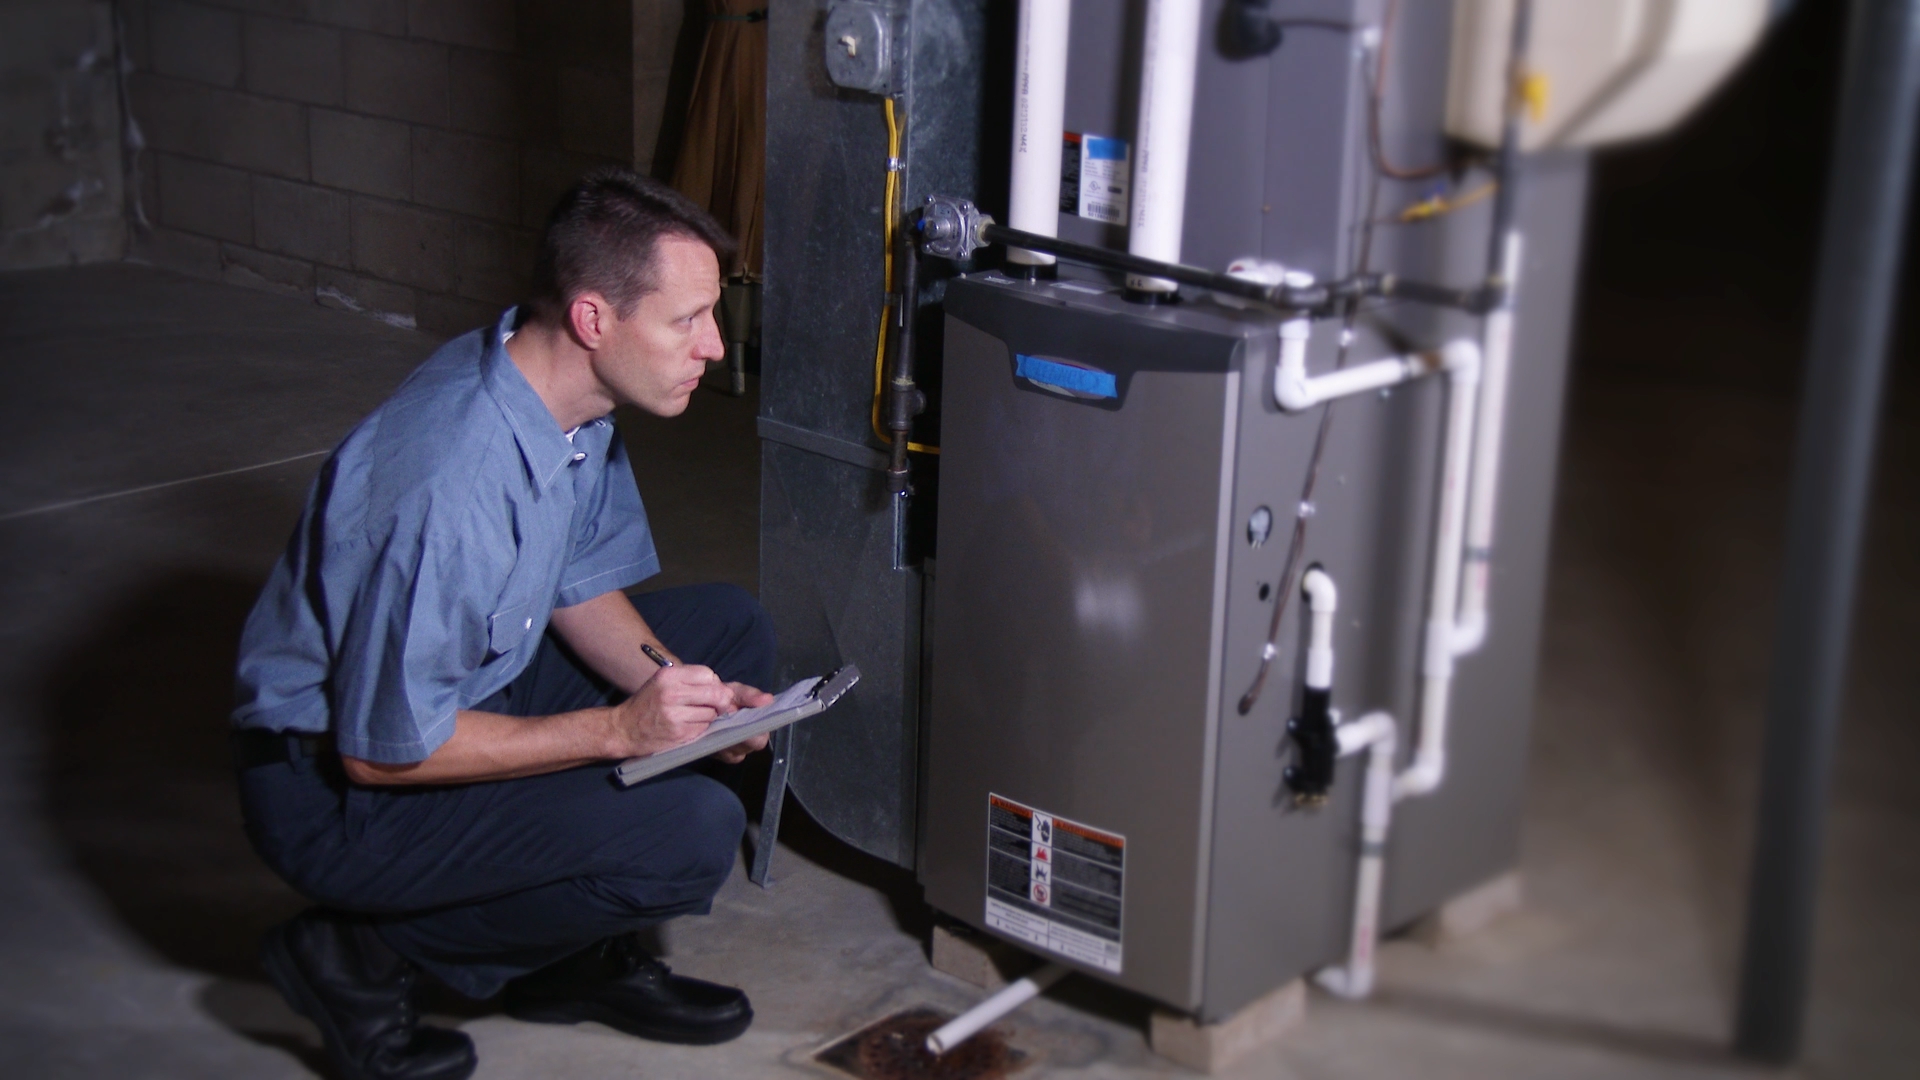 Service man looking at furnace